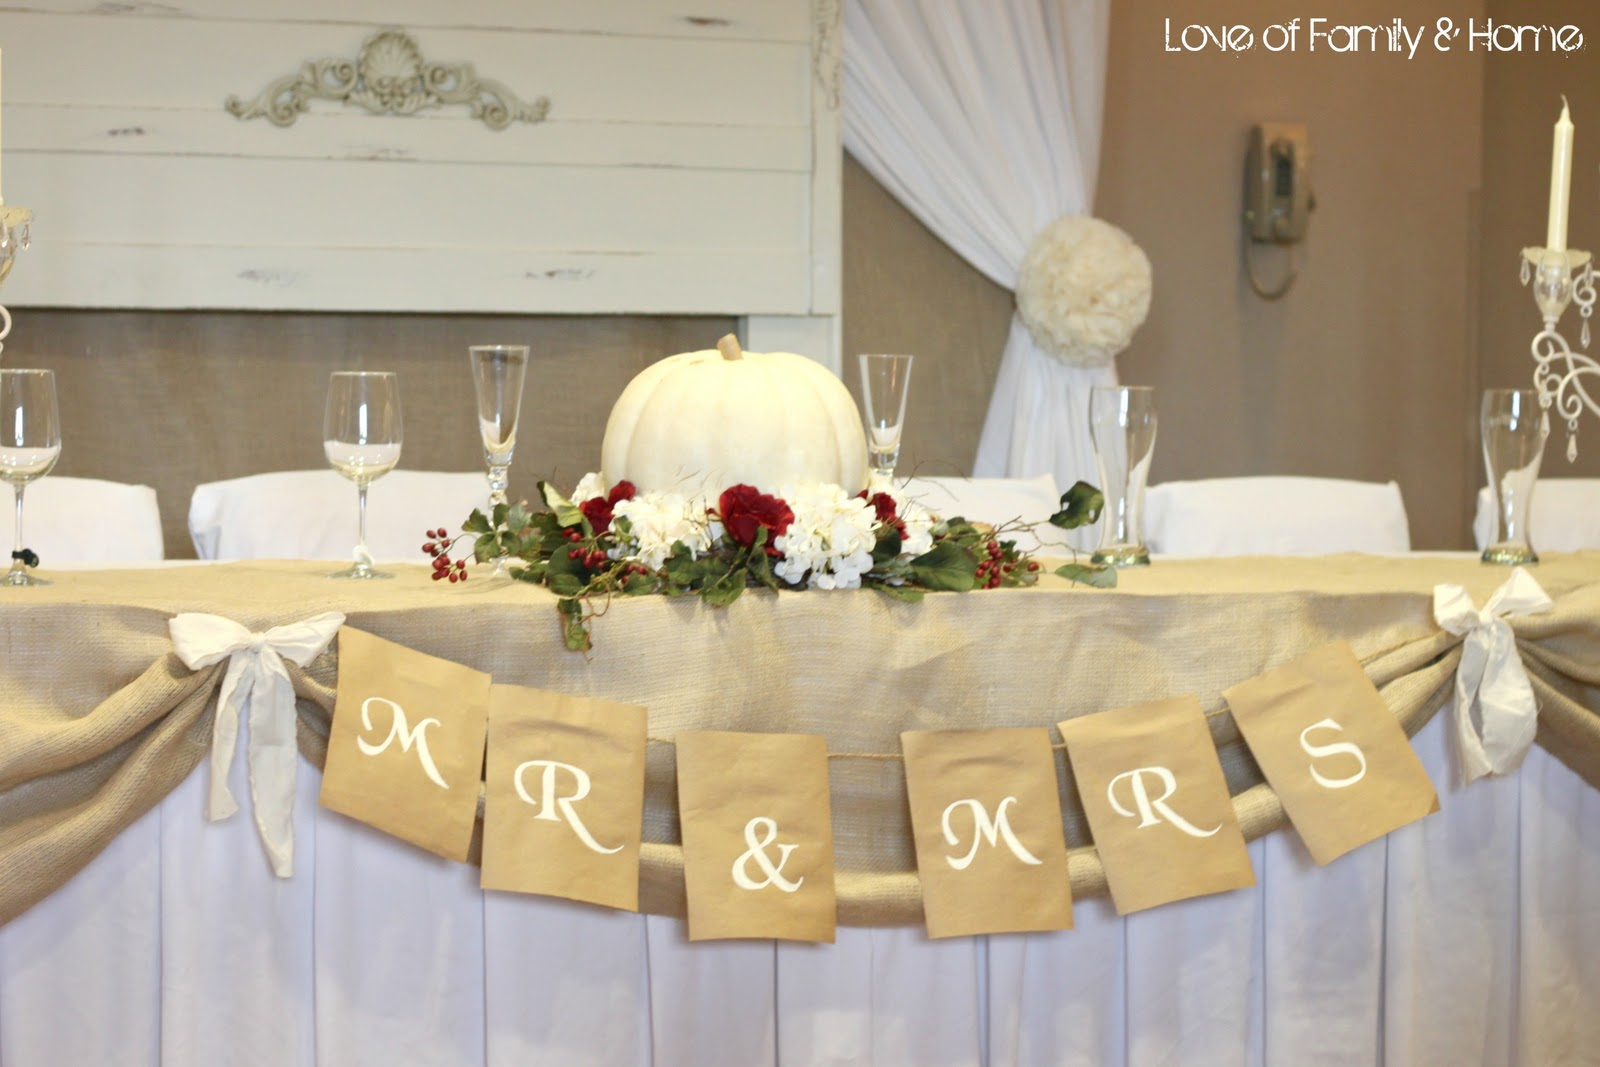 Diy wedding word banners love of family home for Decoration word